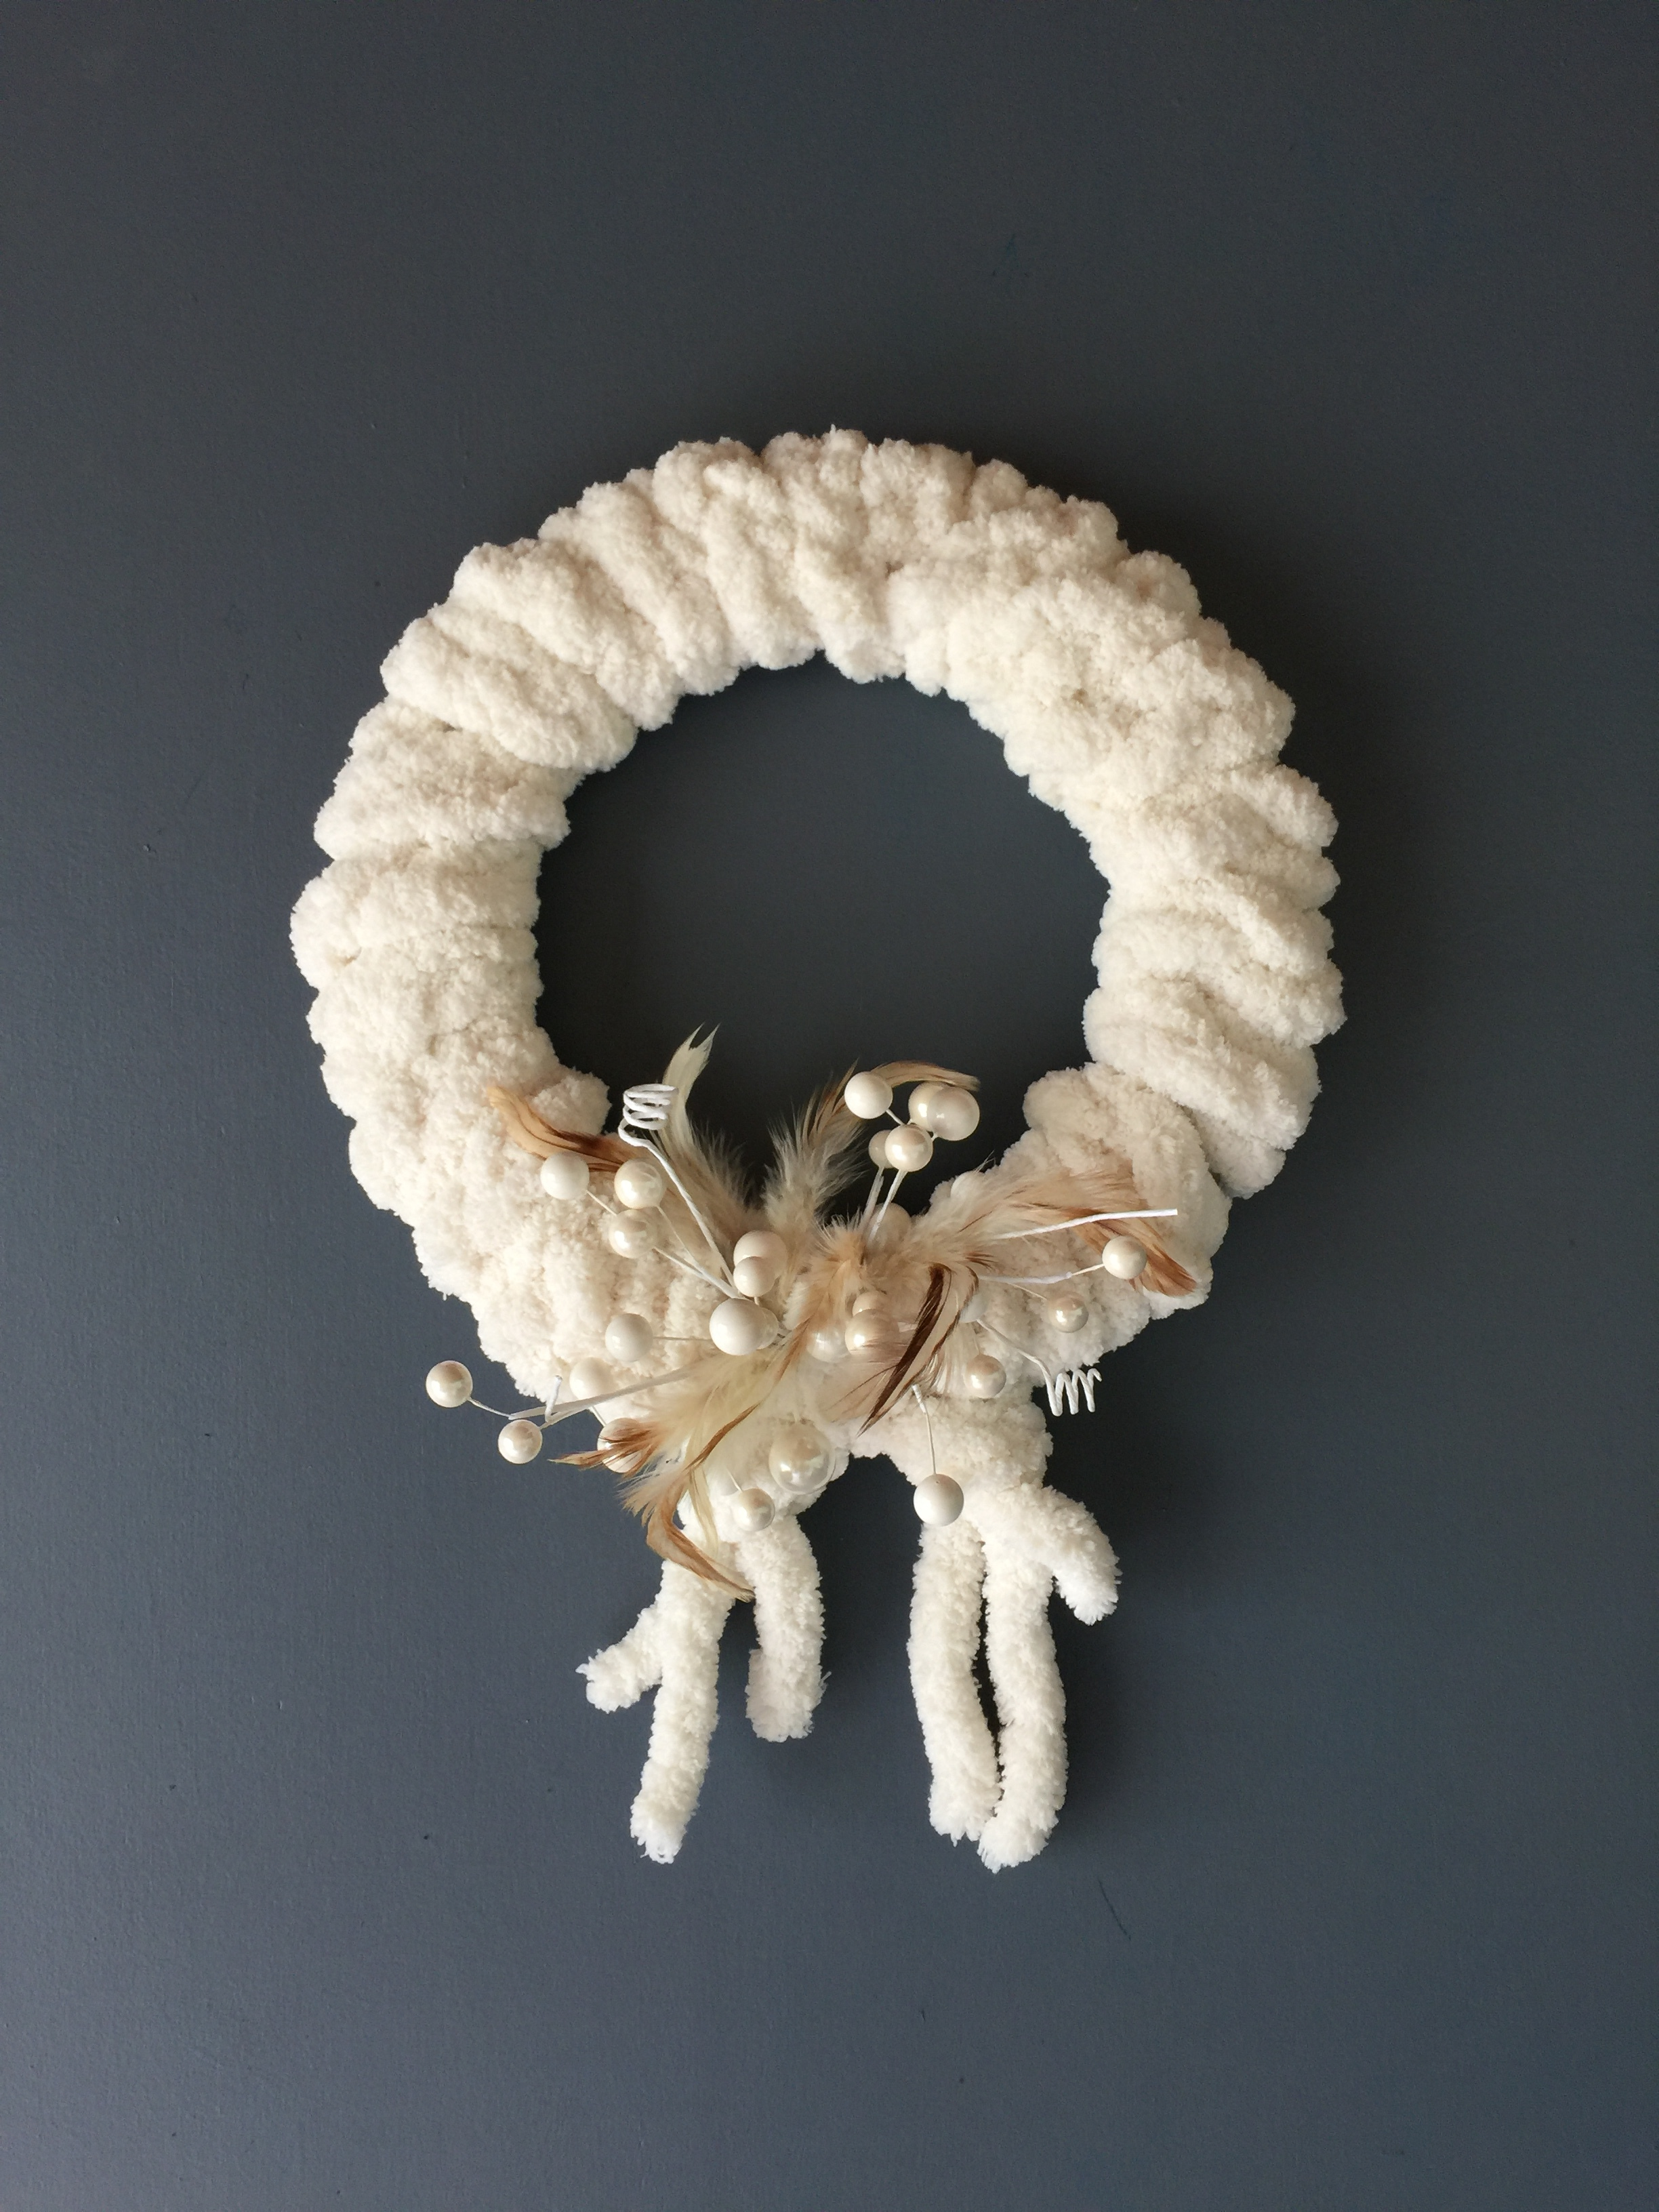 Super simple, 15 minute wreath! I had some left over fluffy yarn, a few feathers and some faux beads and I made a cardboard ring to wrap it around.